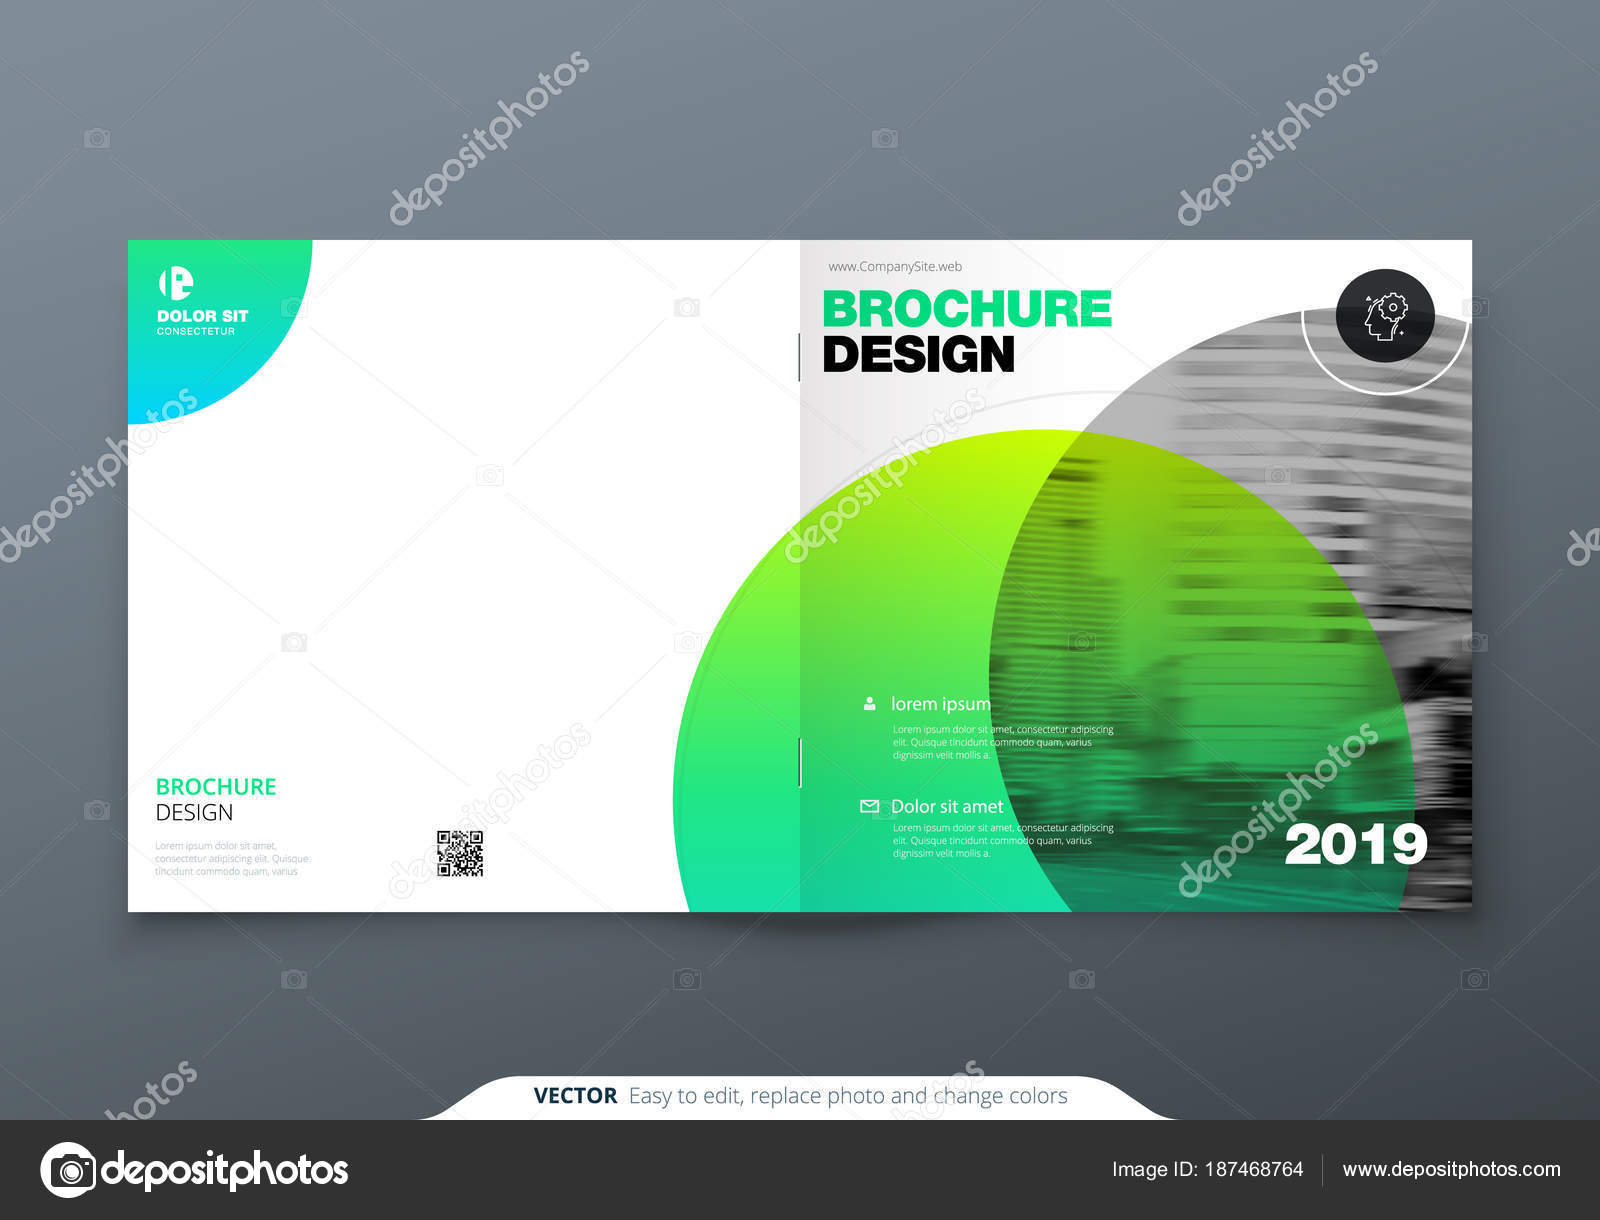 square brochure design green corporate business rectangle template brochure report catalog magazine brochure layout modern circle abstract background